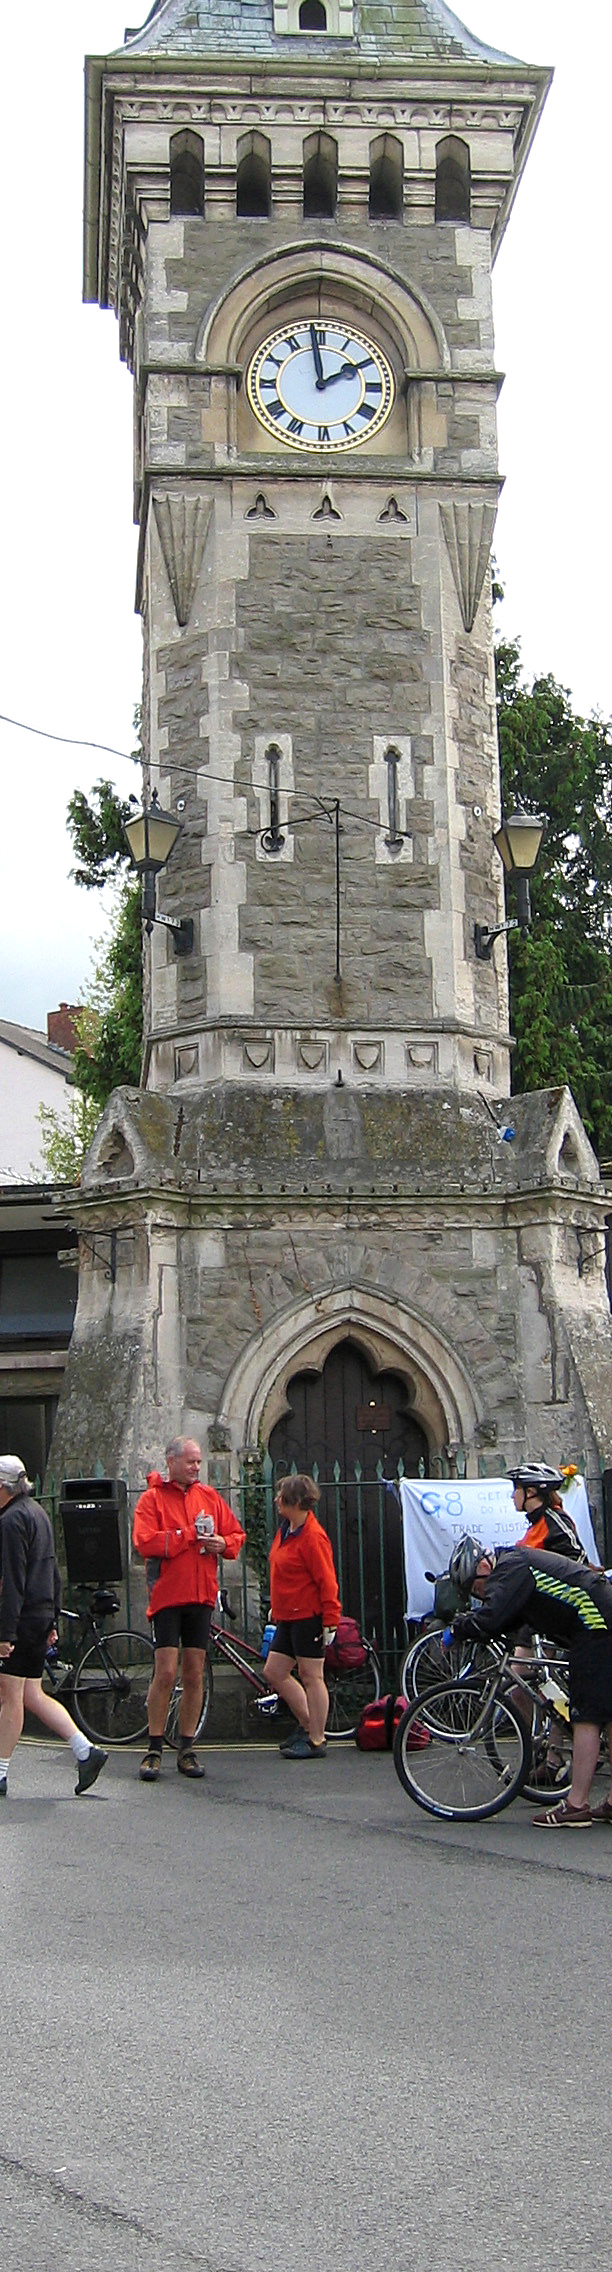 The clocktower in Hay-on-Wye